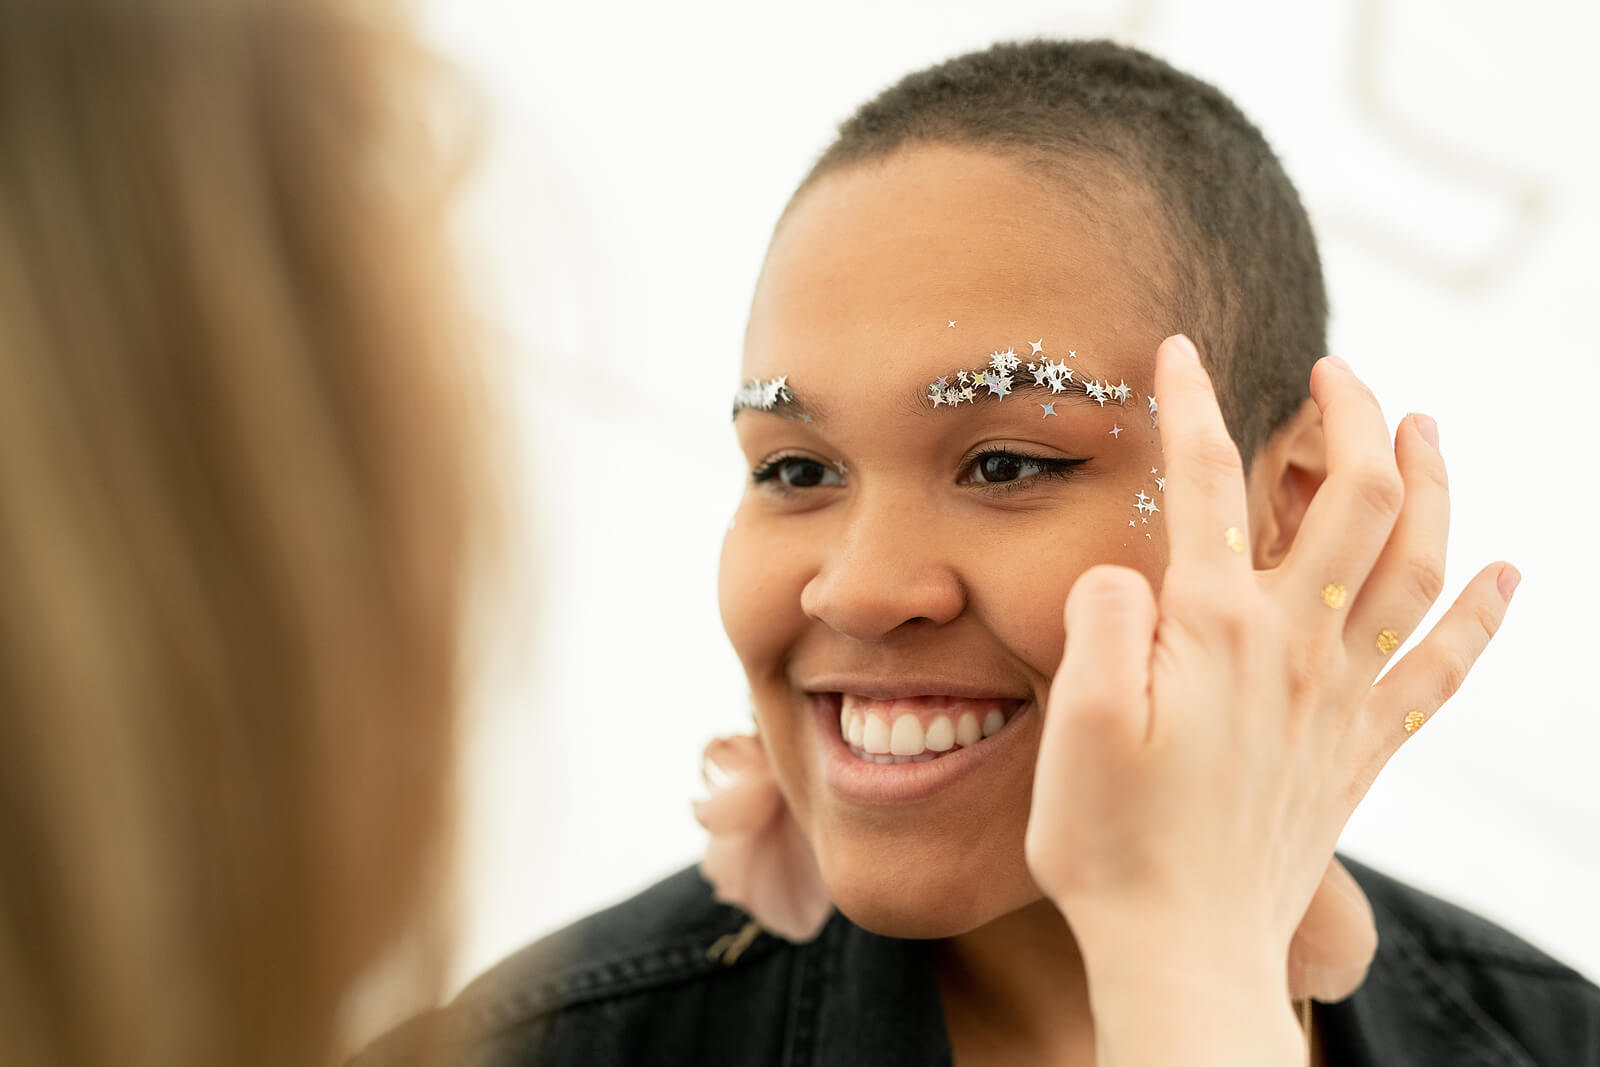 A Black woman having star-shaped glitter applied to her face